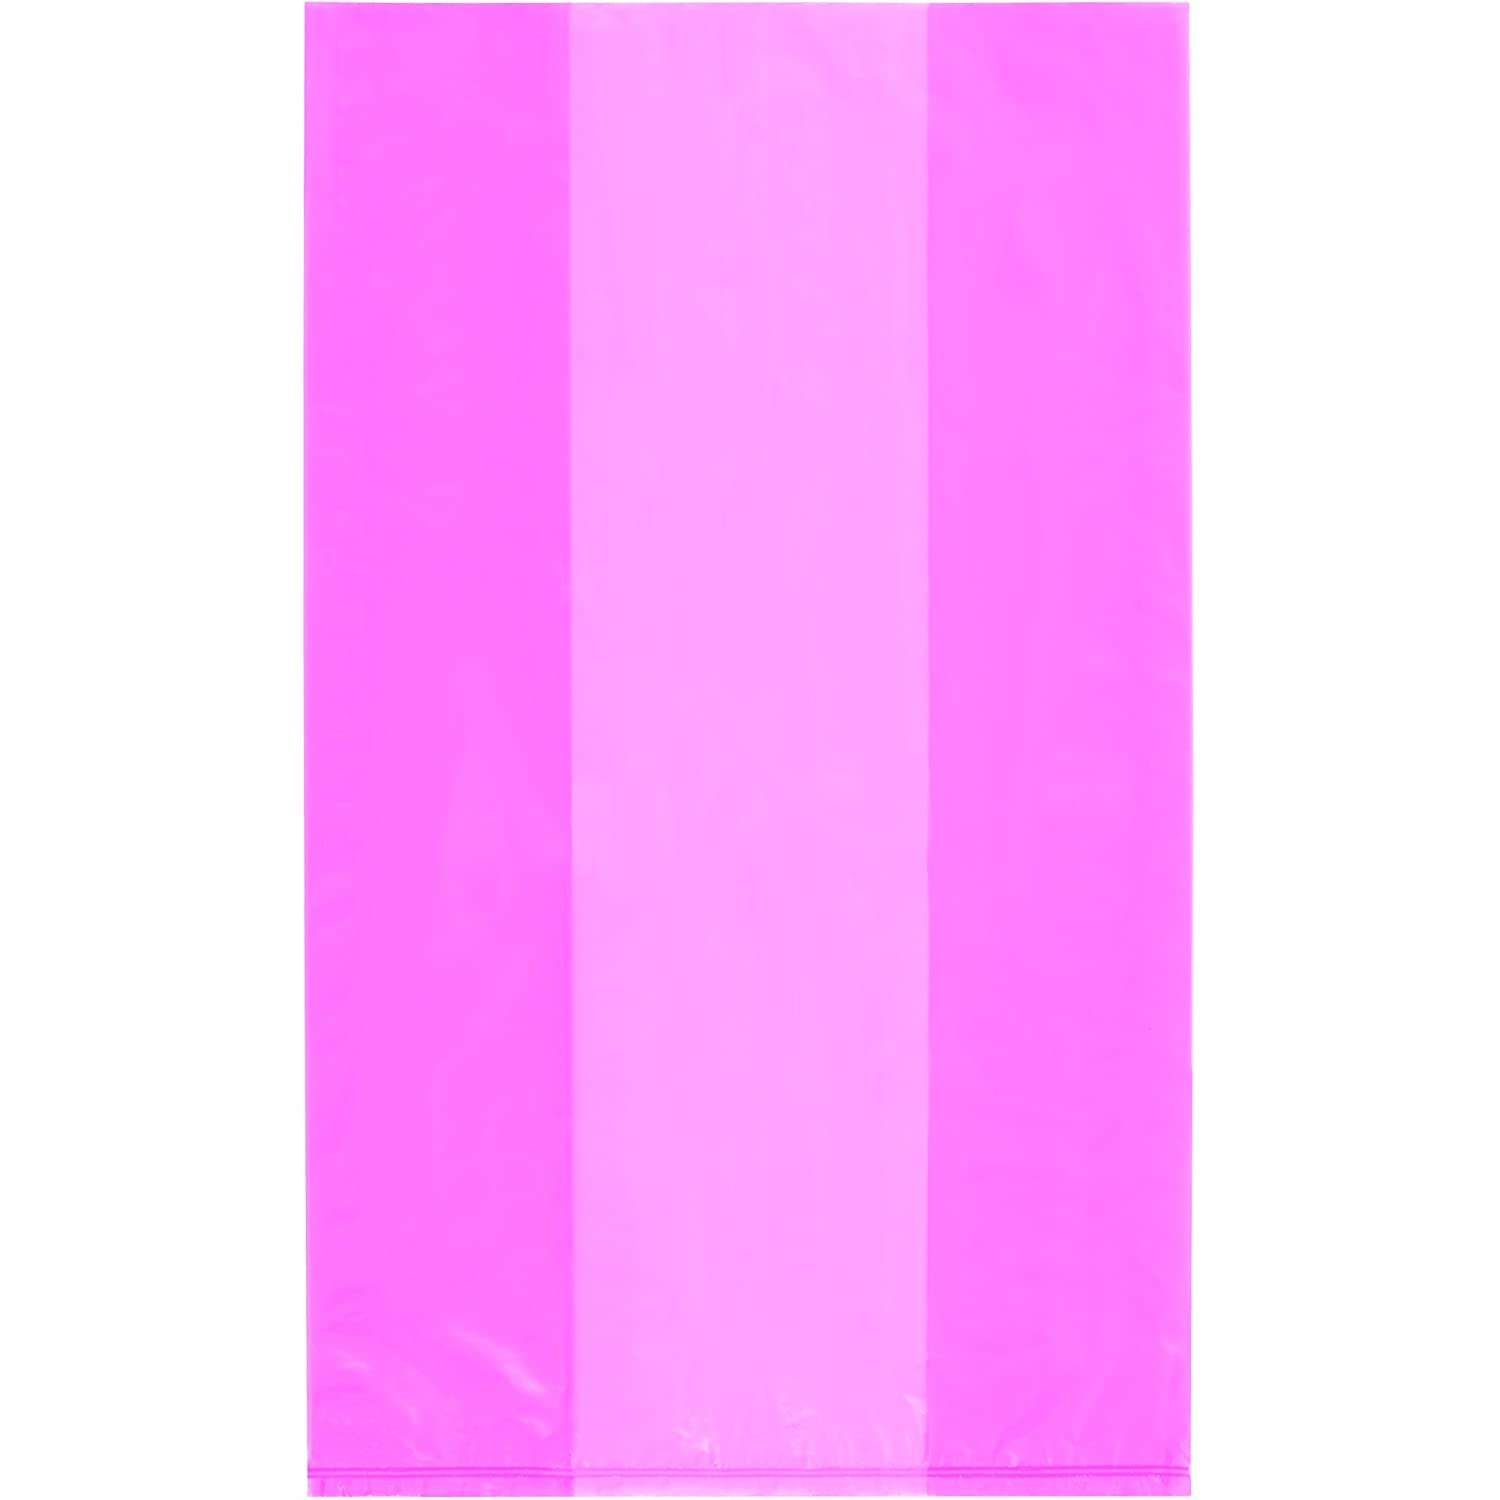 Pack of 1000 5 Height 6.75 Length 6.75 Width 6.75 Width RetailSource Ltd Pack of 1000 6.75 Length RetailSource PBAS2100x1000 2 x 3-4 Mil Anti-Static Reclosable Poly Bags 5 Height